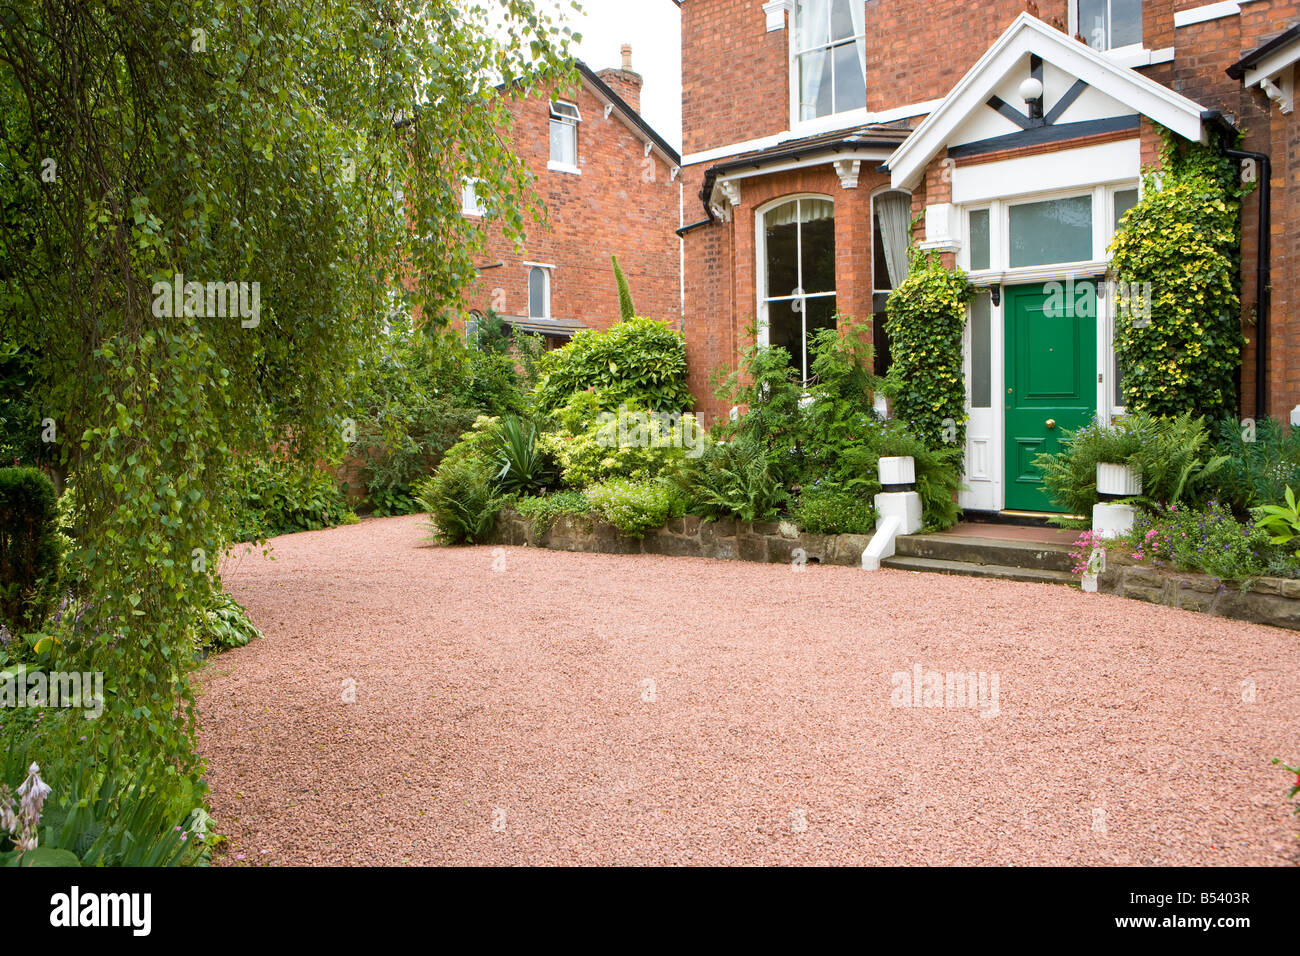 Marvelous Front Garden Of A Large Detached House With Red Gravel Driveway And Holly  Bushes